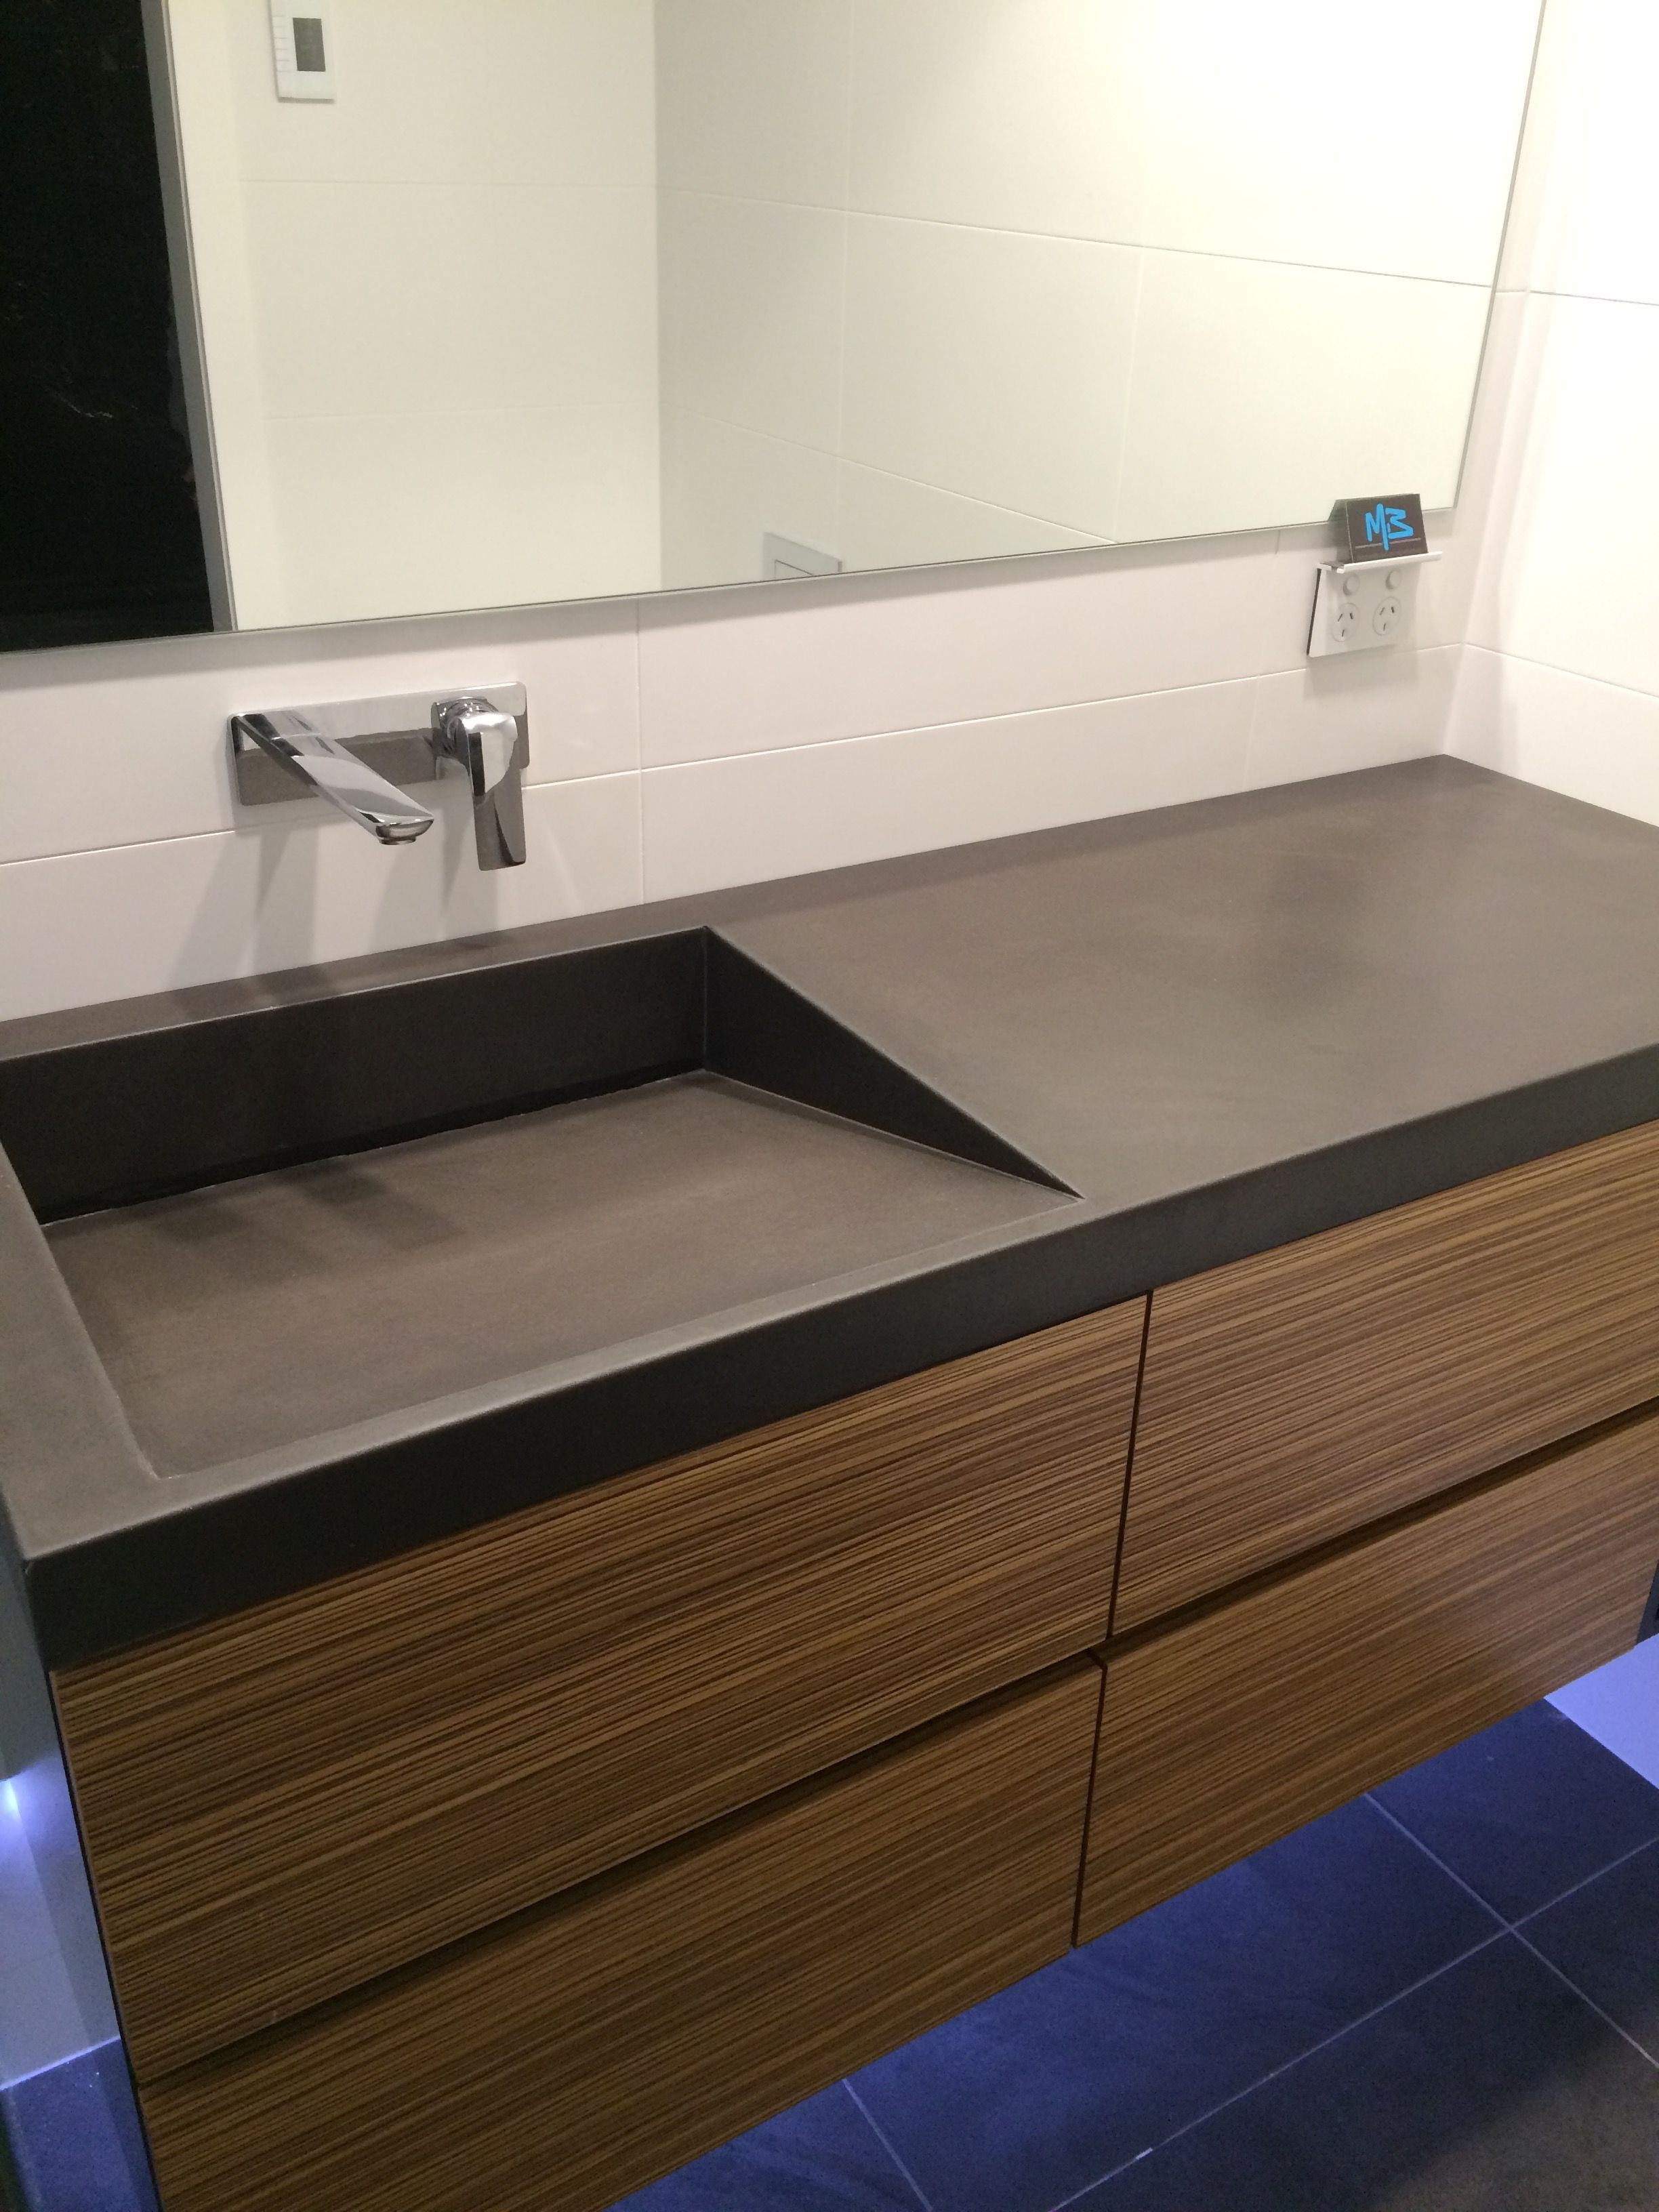 Polished concrete vanity top with integrated sink by Bathroom vanity with integrated sink